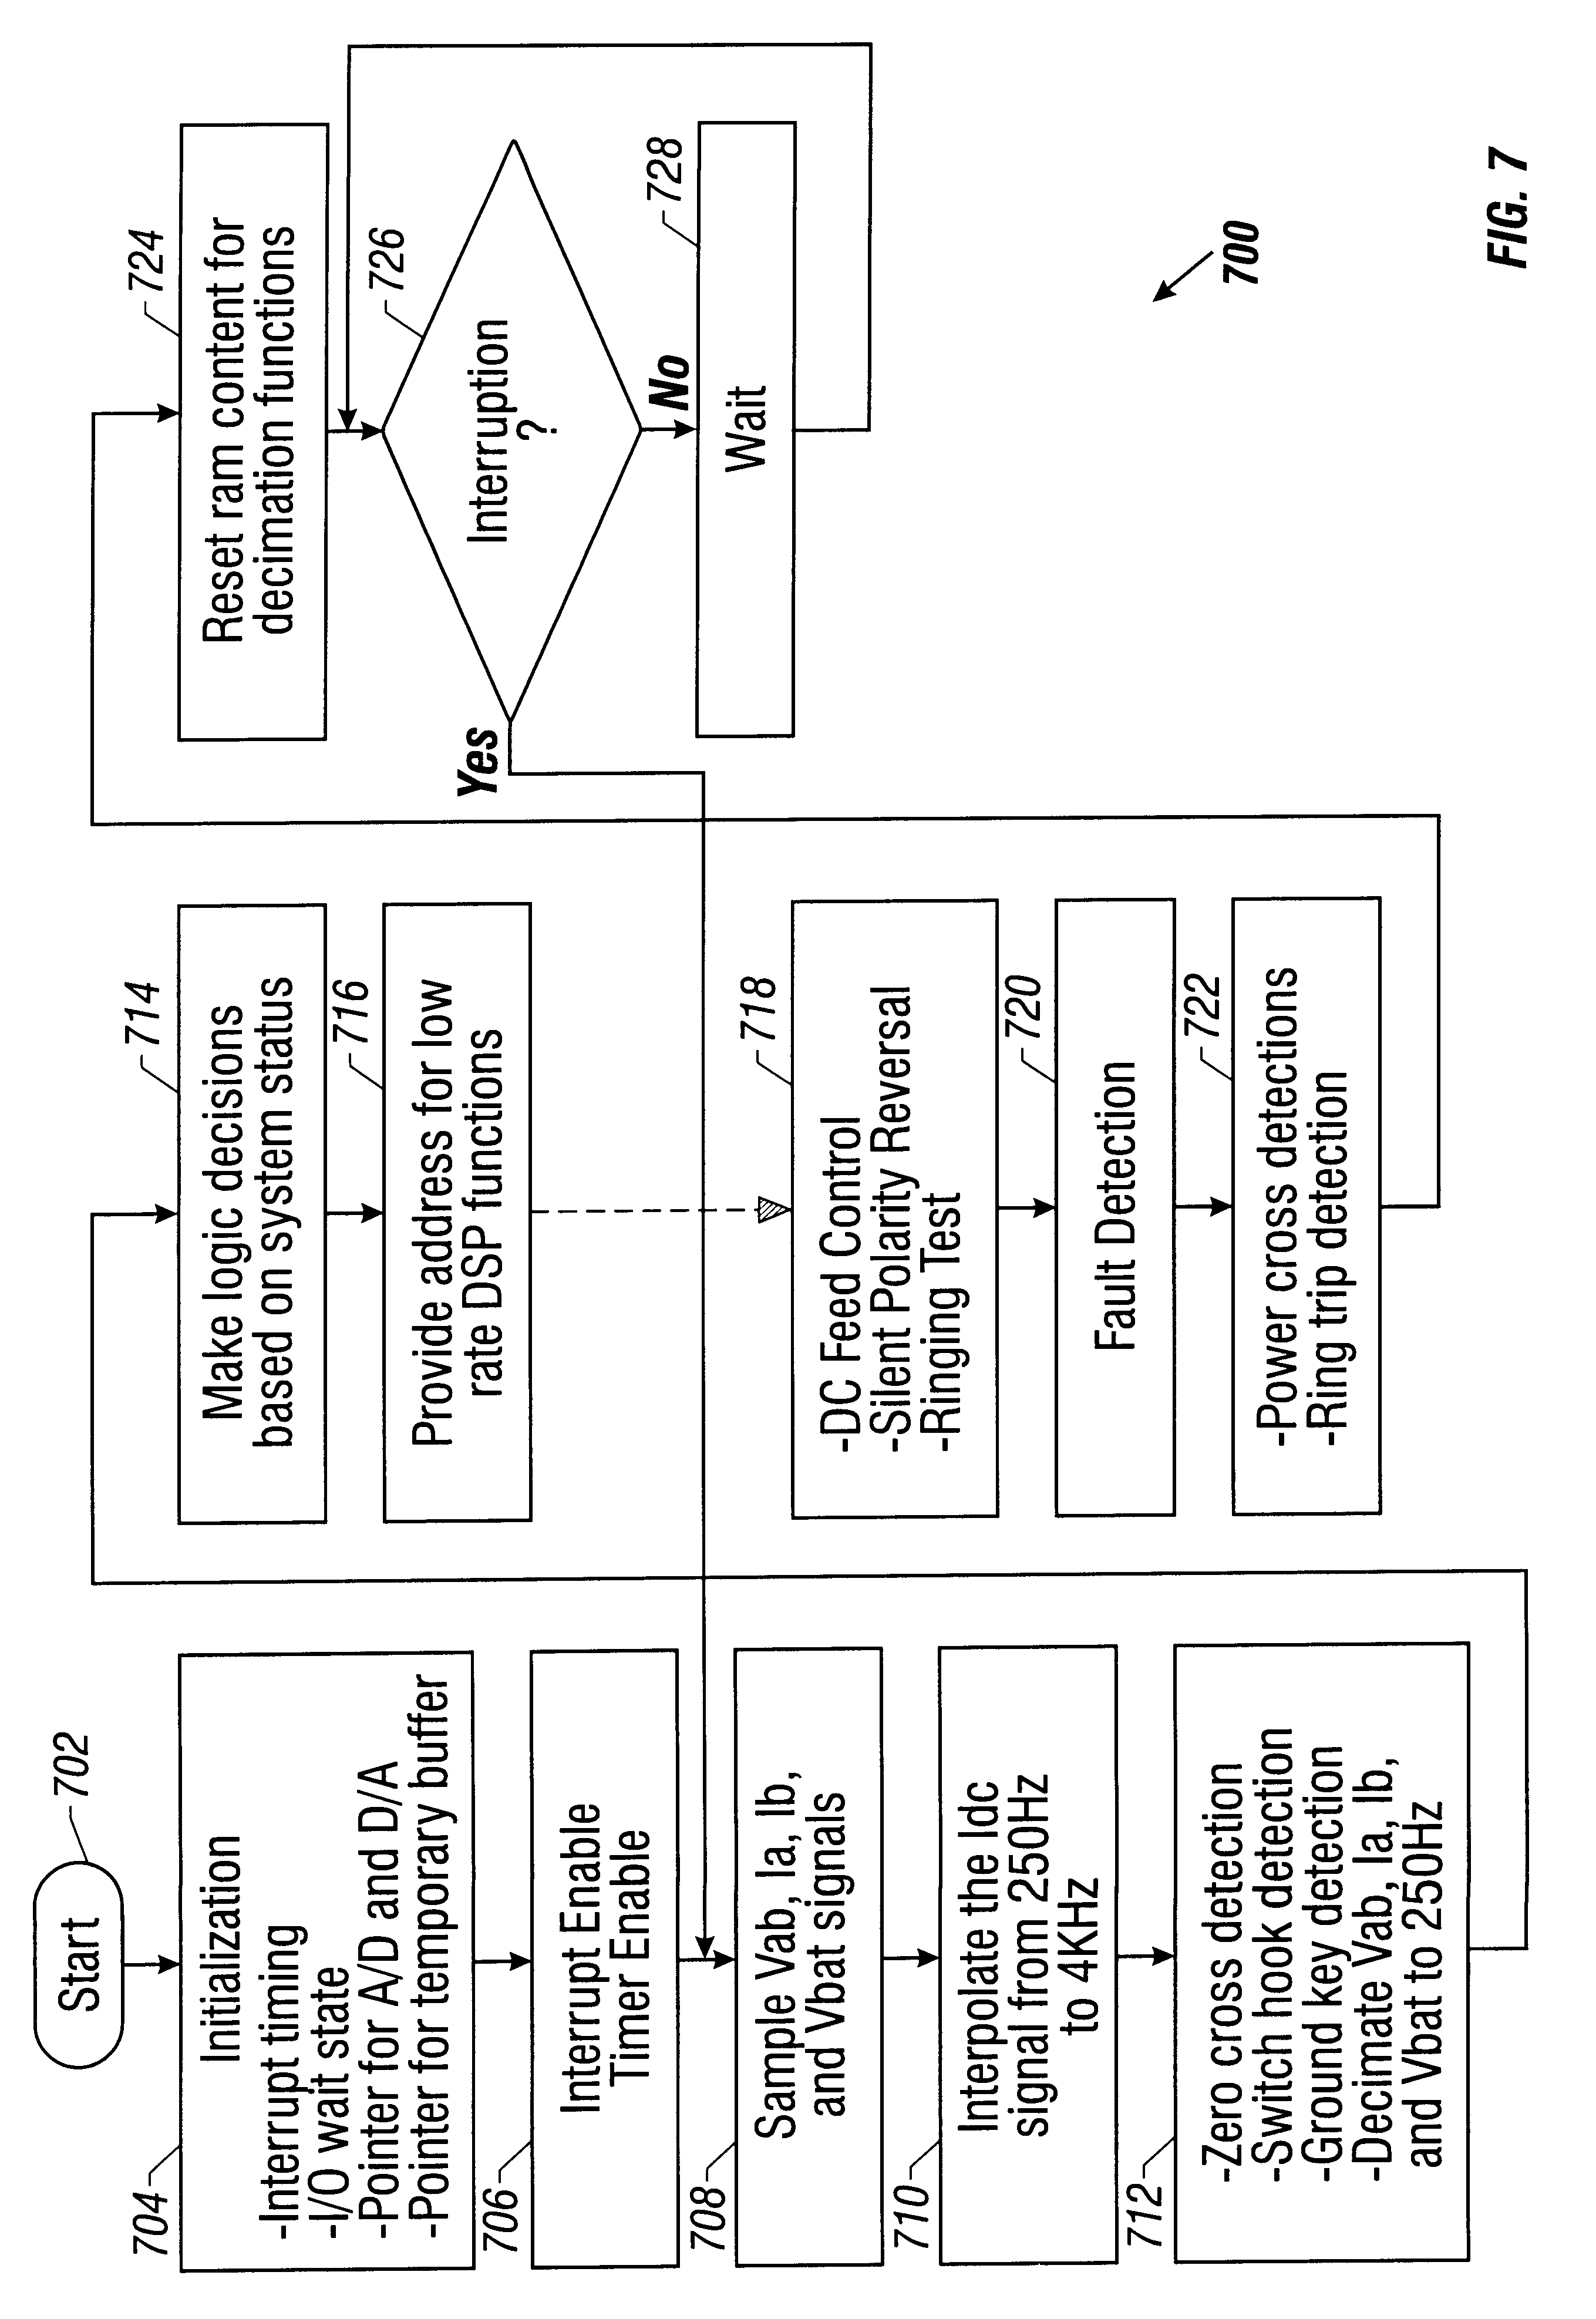 Patent Us 6219417 B1 Telephone Hybrid Circuit Schematic Furthermore Ringer 0 Petitions